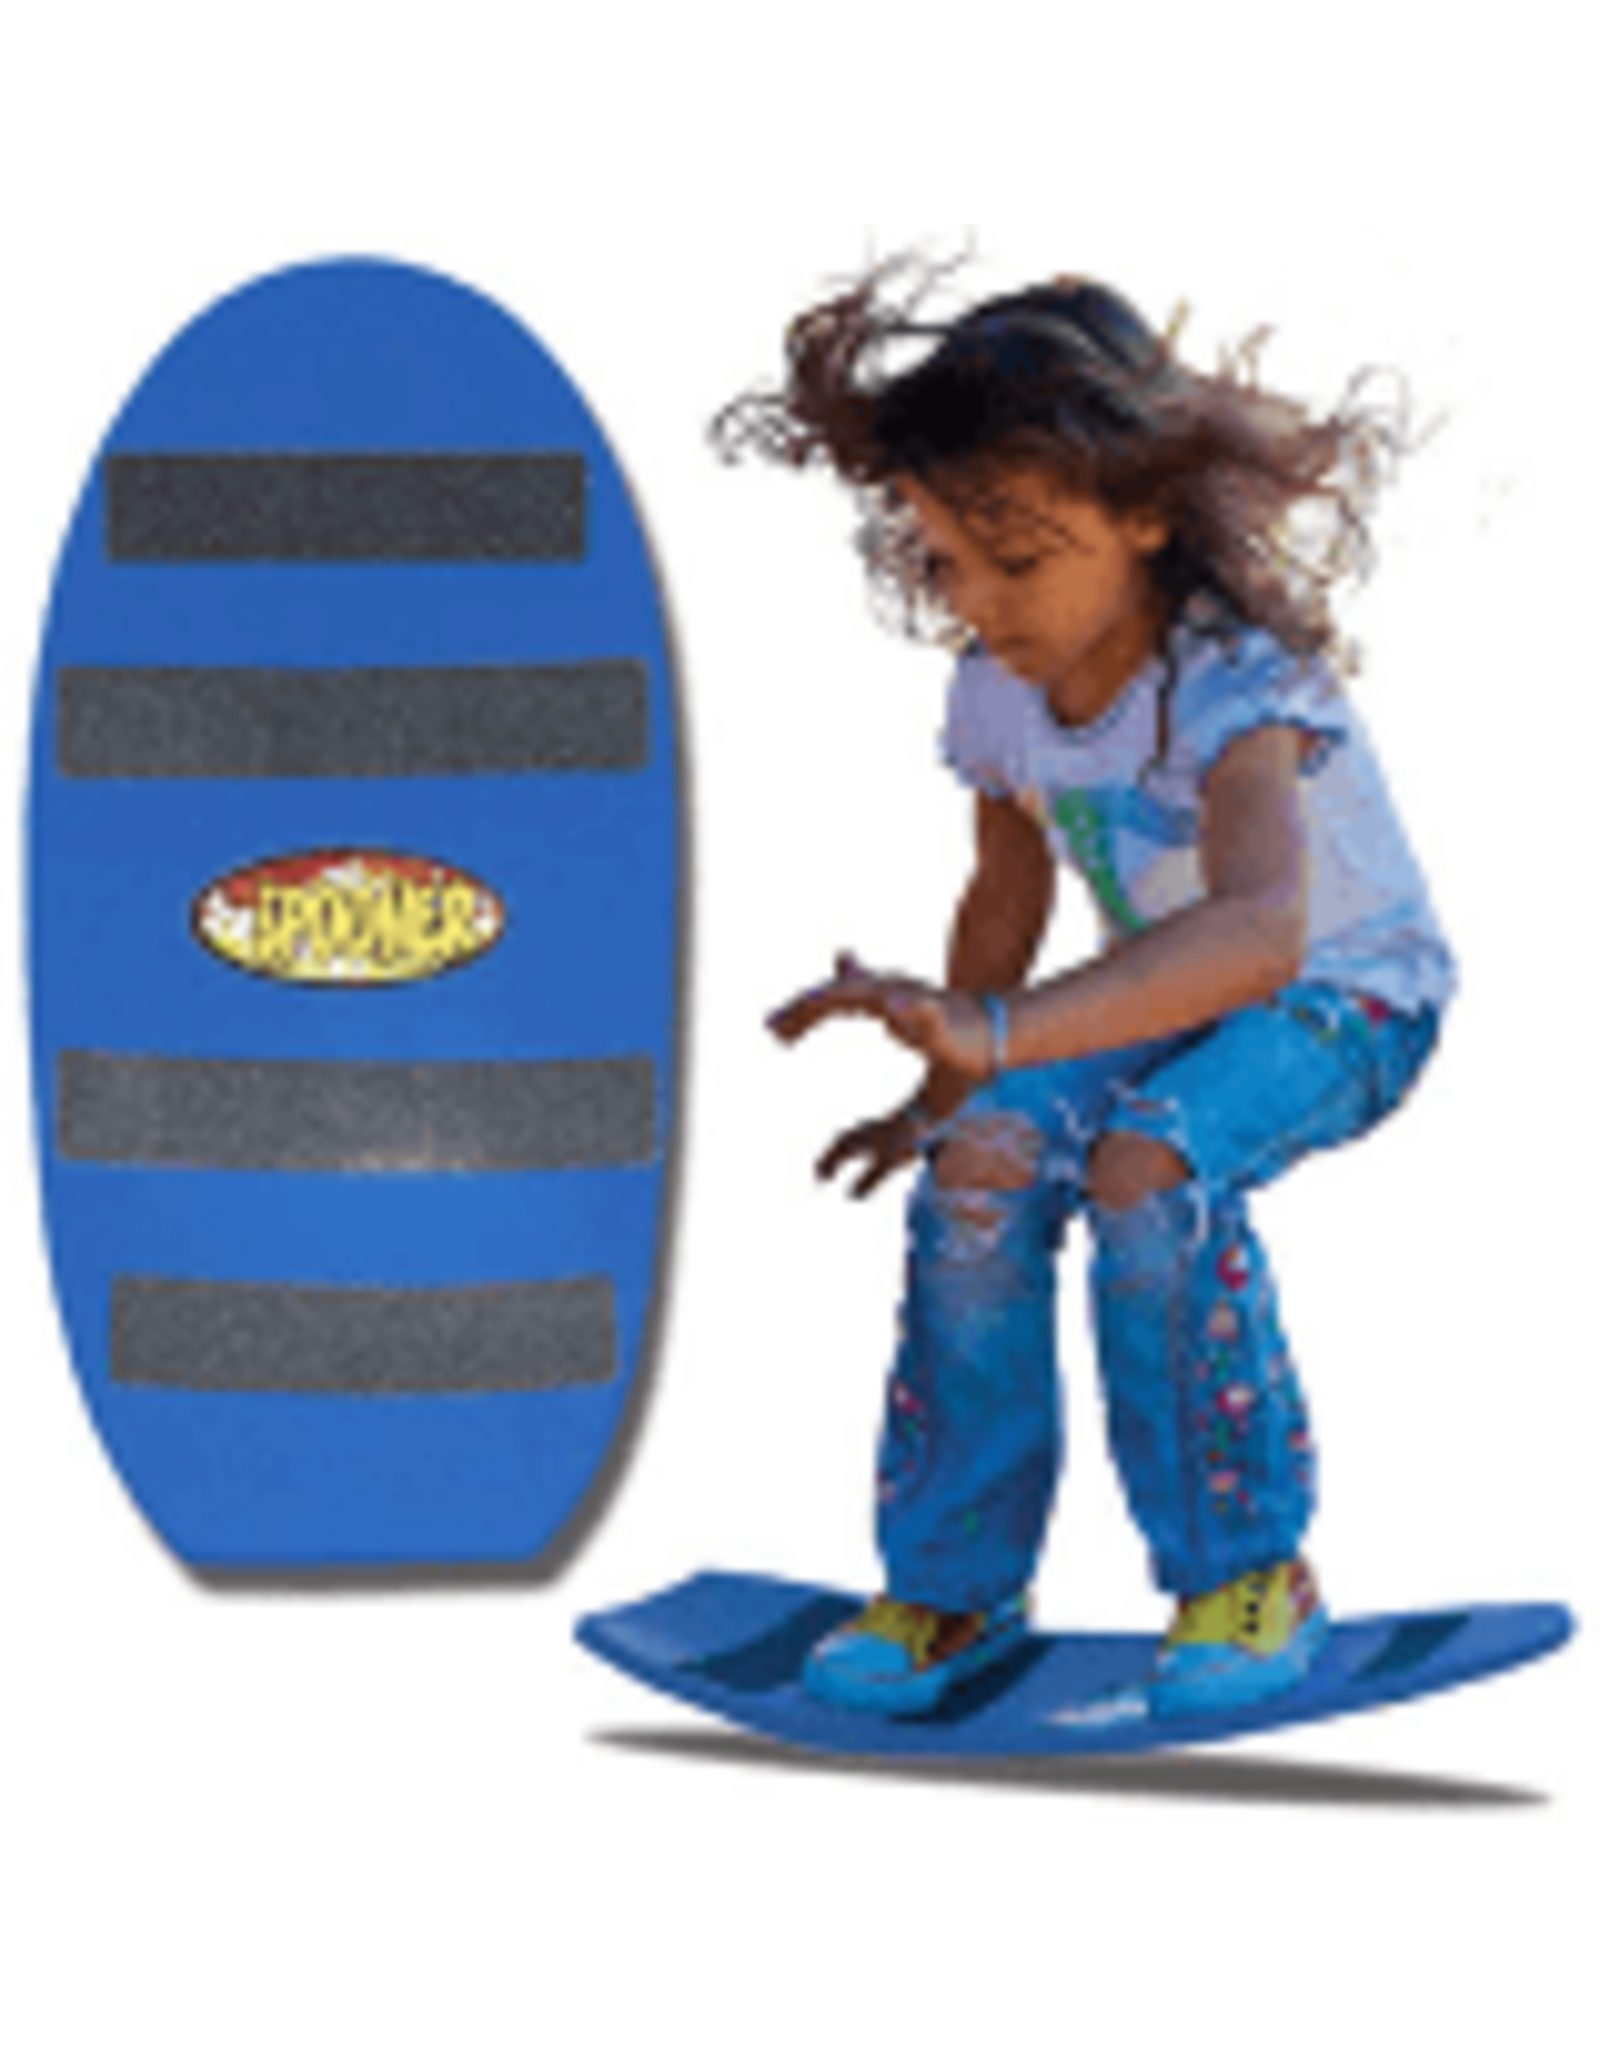 Spooner Board Freestyle ages 3+